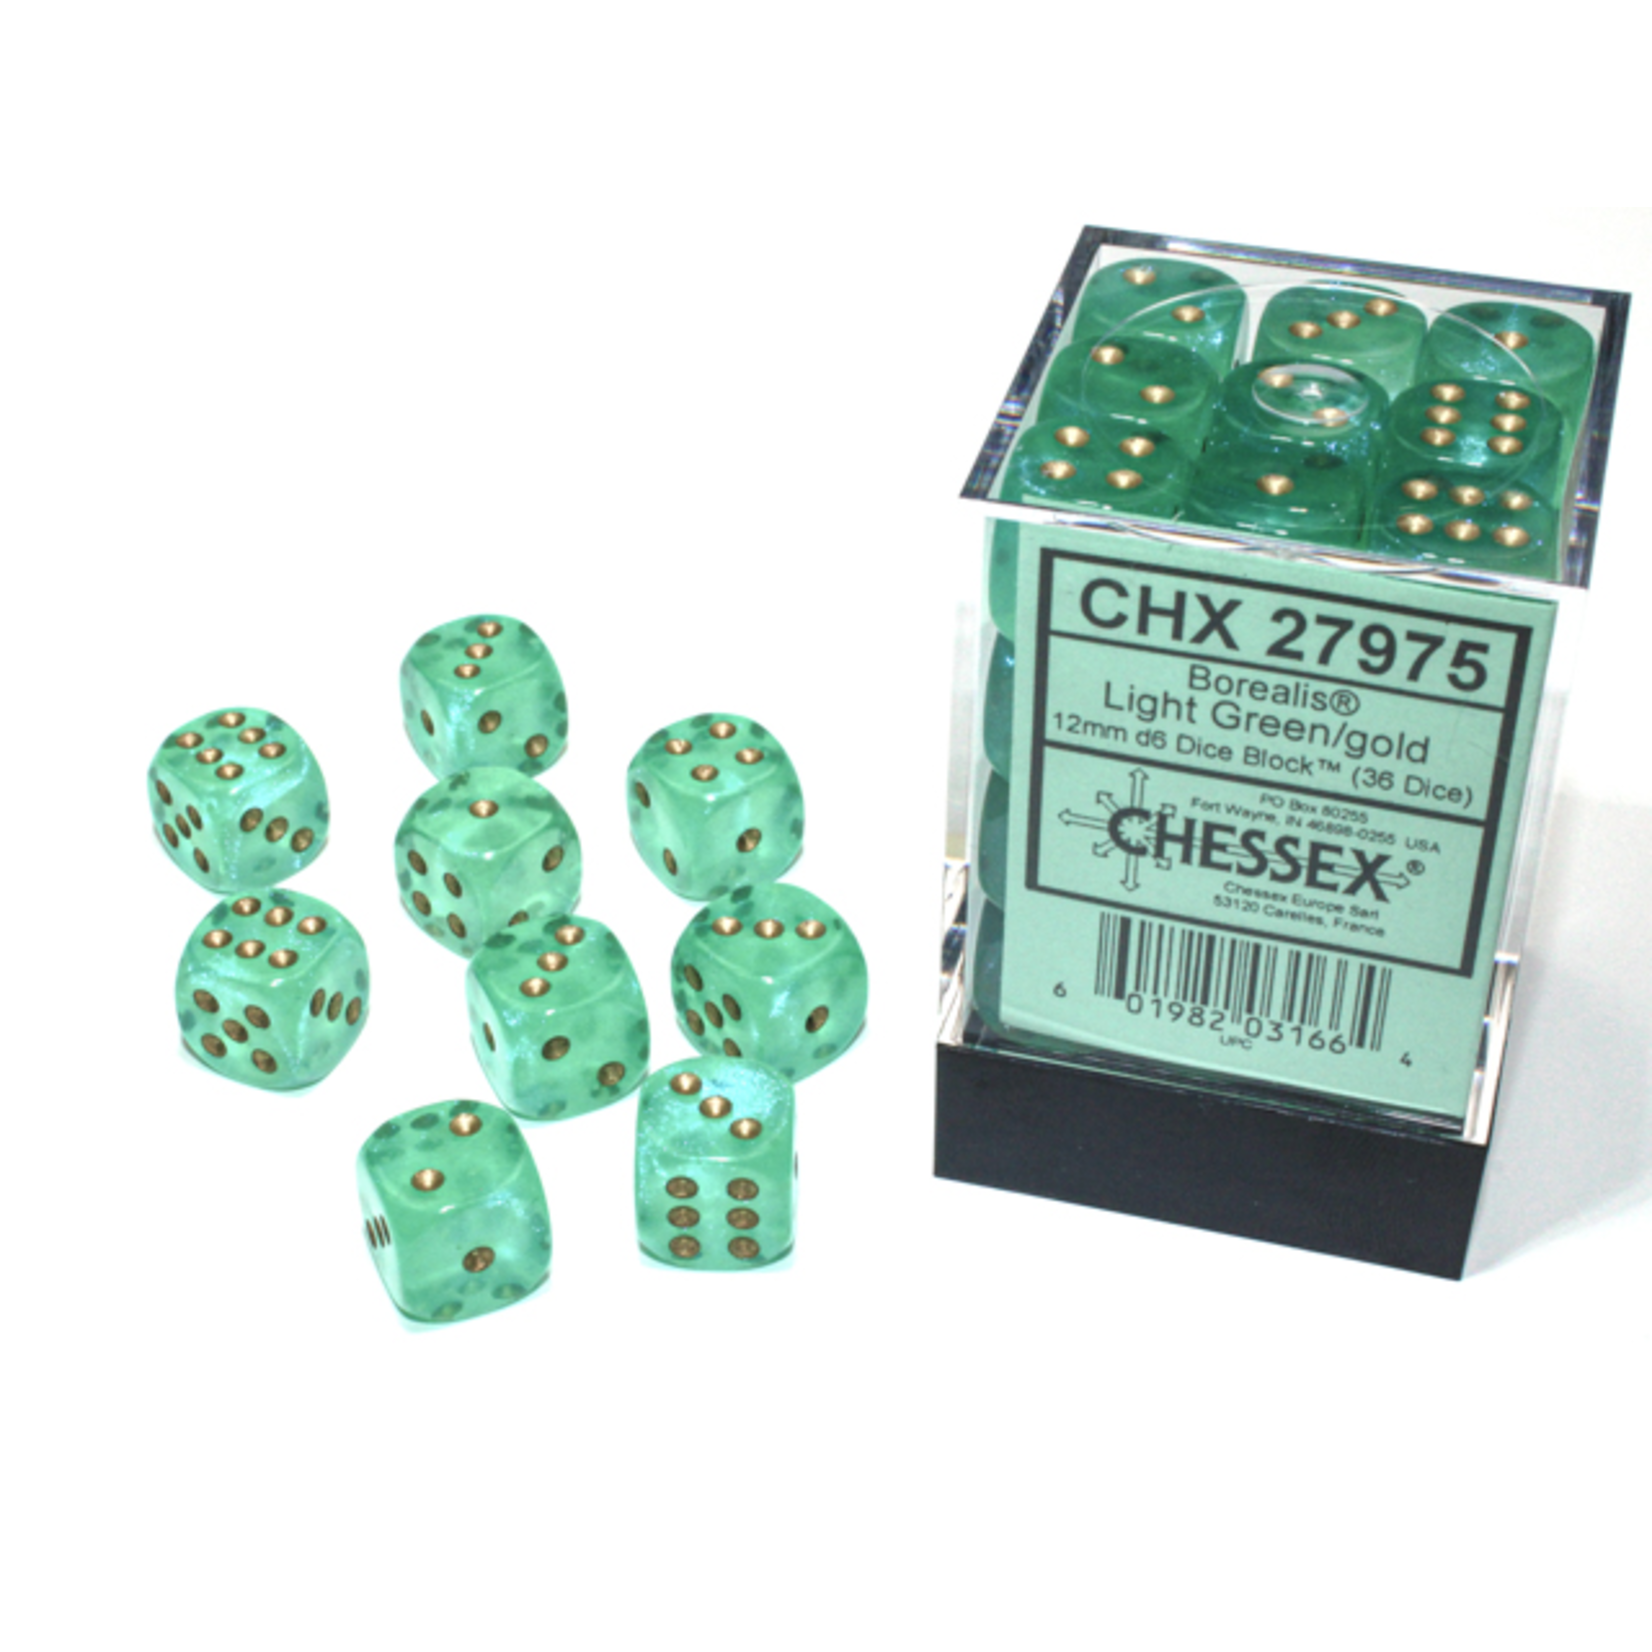 Chessex D6 Cube 12mm Borealis Luminary Light Green with Gold Pips (CHX)